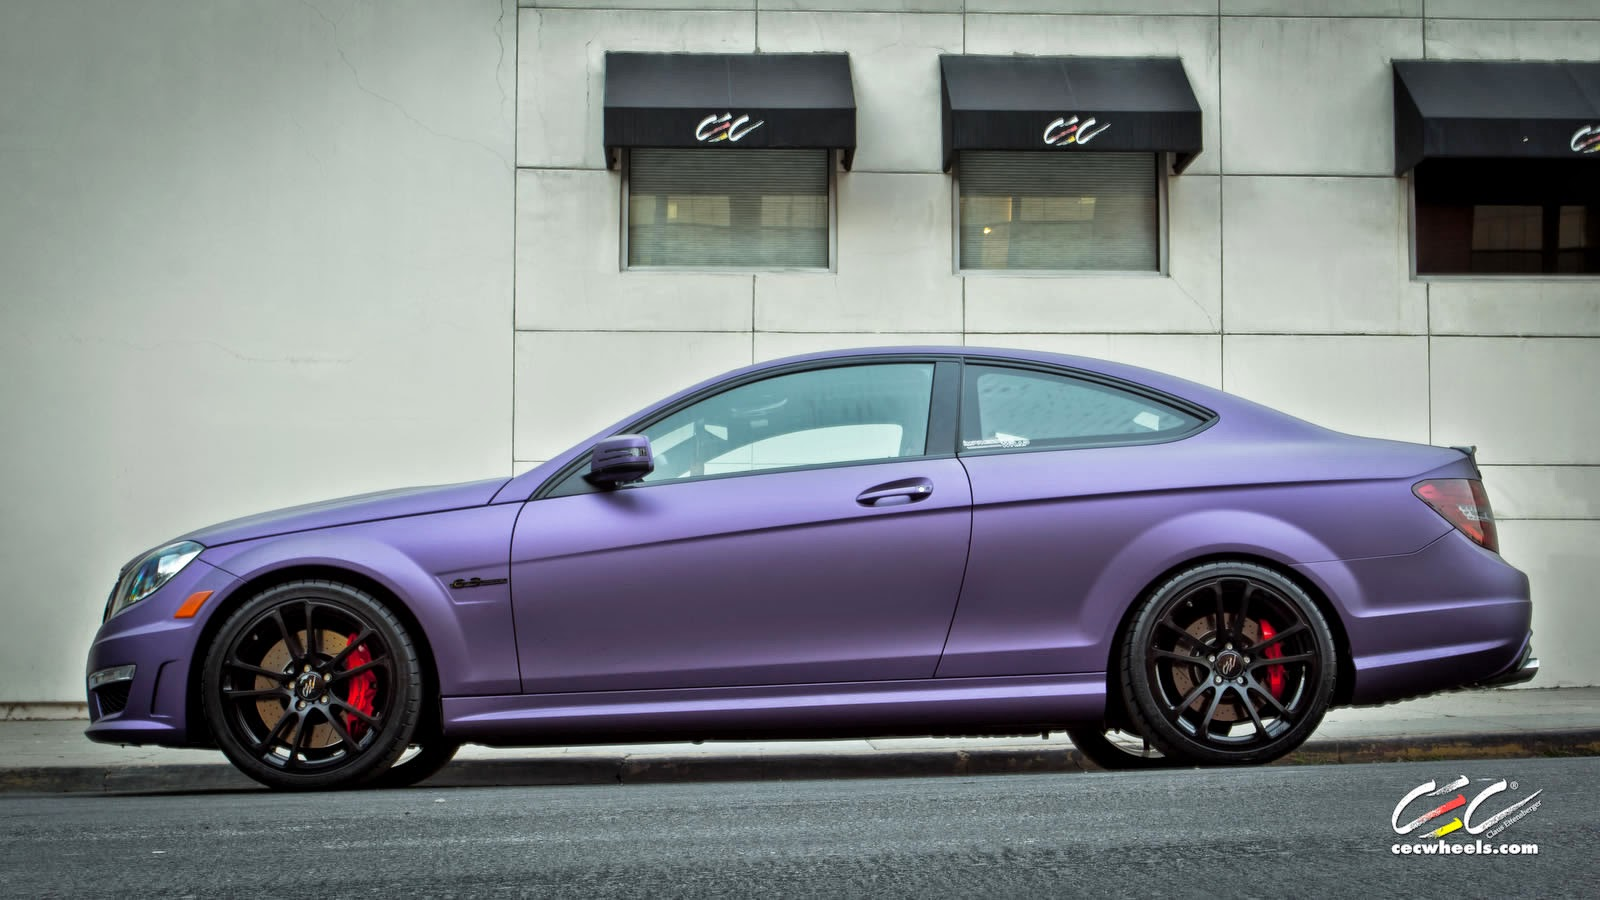 mercedes benz w204 c63 amg coupe purple matte on cec wheels benztuning. Black Bedroom Furniture Sets. Home Design Ideas